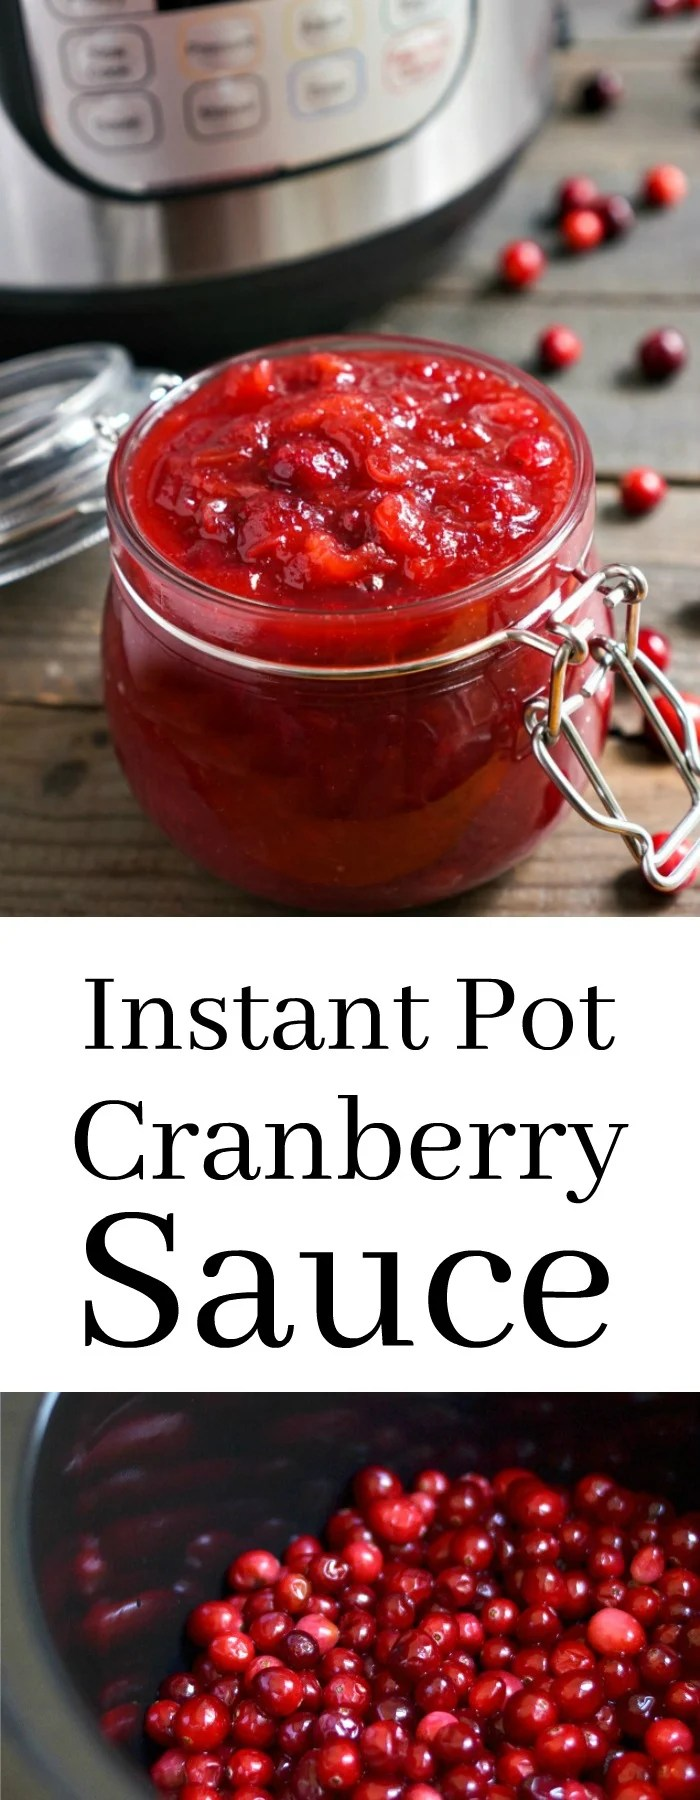 This Instant Pot Cranberry Sauce is a must-have side dish for your Thanksgiving table. Such an easy, healthy holiday recipe! Gluten-free, vegan